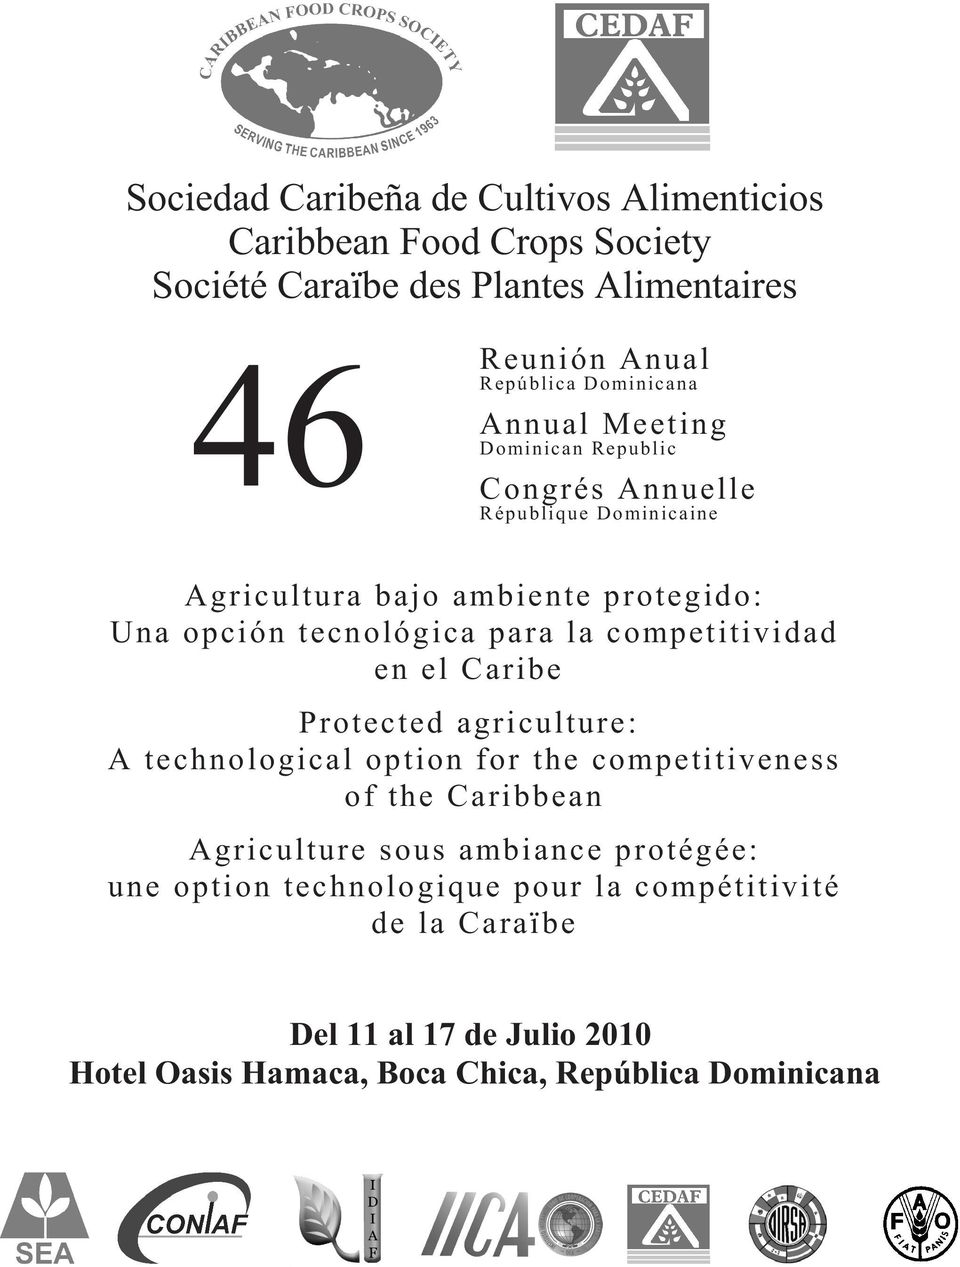 para la competitividad en el Caribe Protected agriculture: A technological option for the competitiveness of the Caribbean Agriculture sous